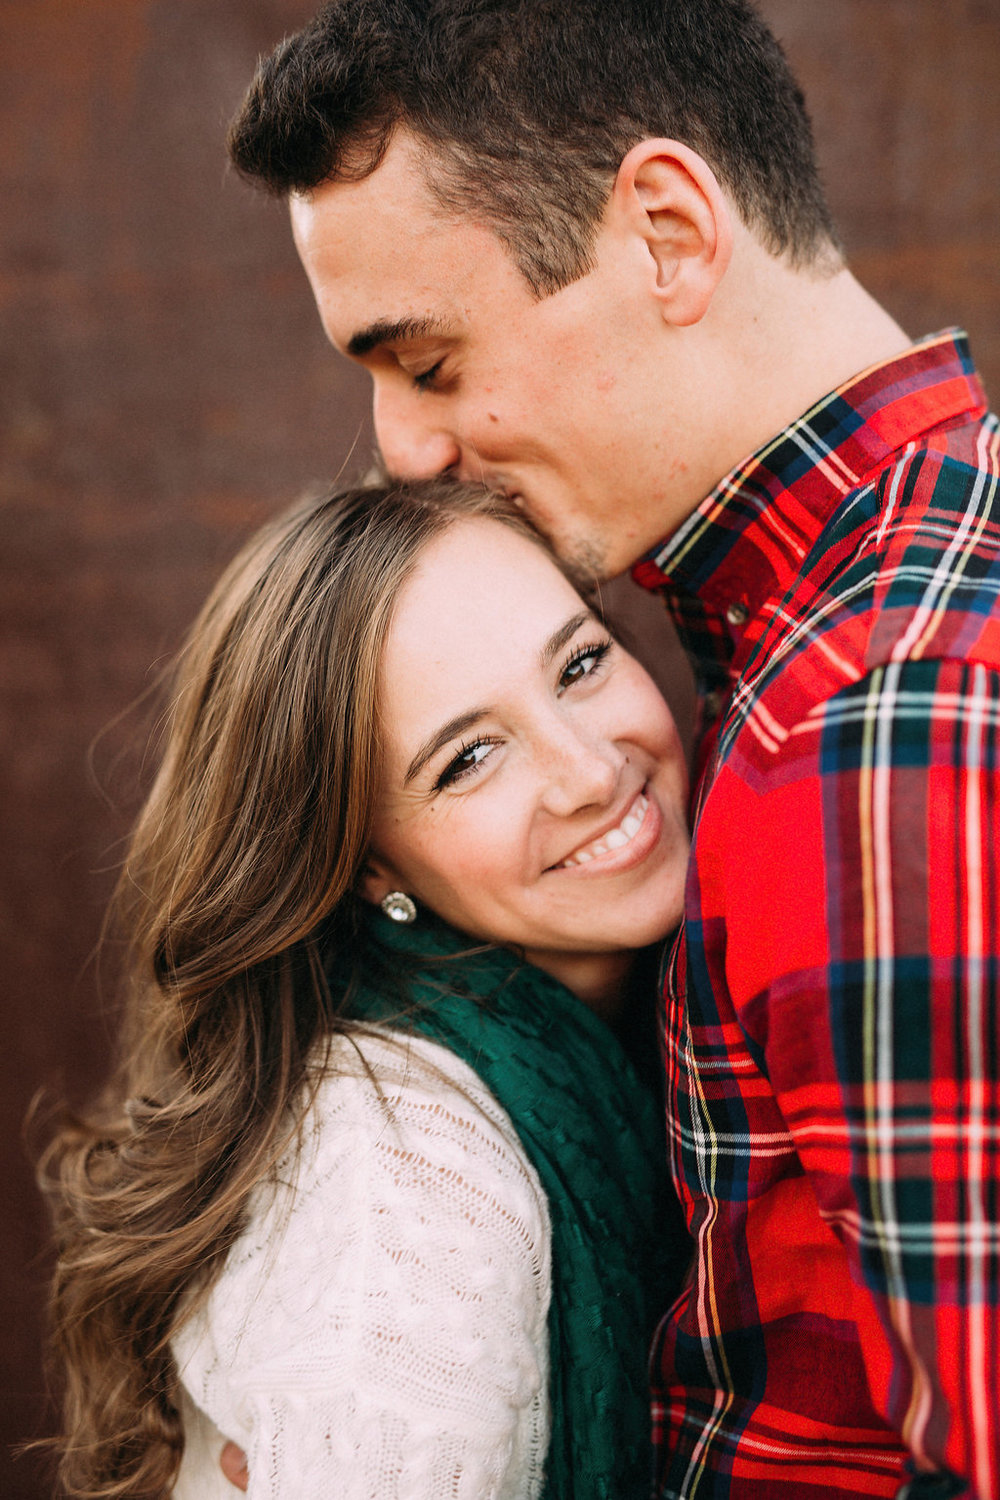 samantha&tanner-engagements-106.jpg